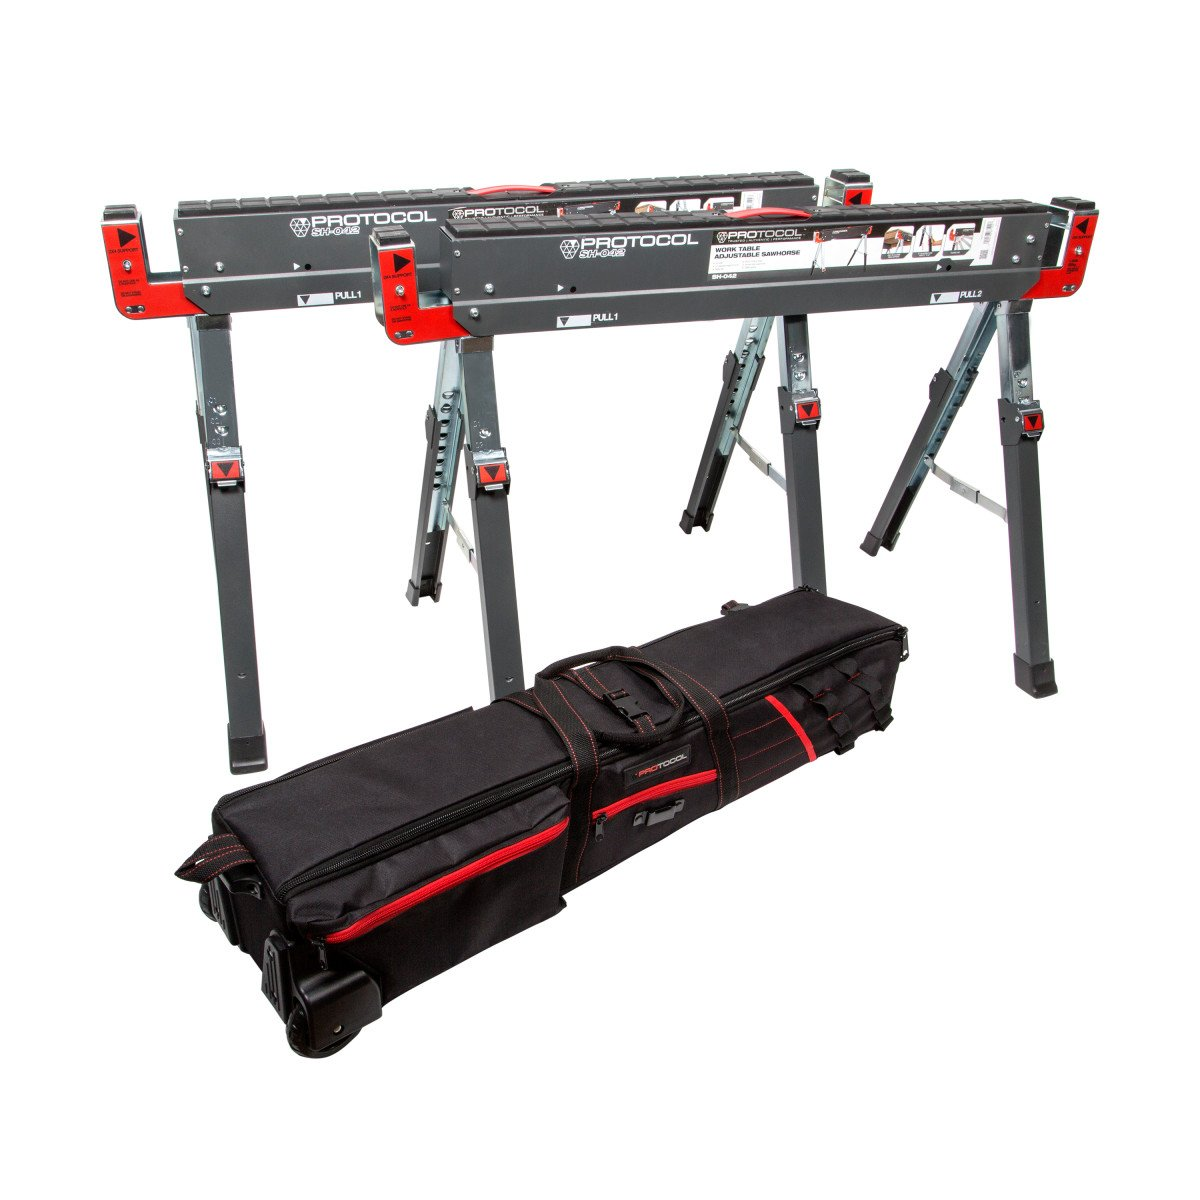 Durable Steel Construction Set of Two 2x4 Table Support Arms Folding Legs Combined Loading Capacity 2,600 lb PROTOCOL Equipment Adjustable Height Work Table Folding Sawhorses